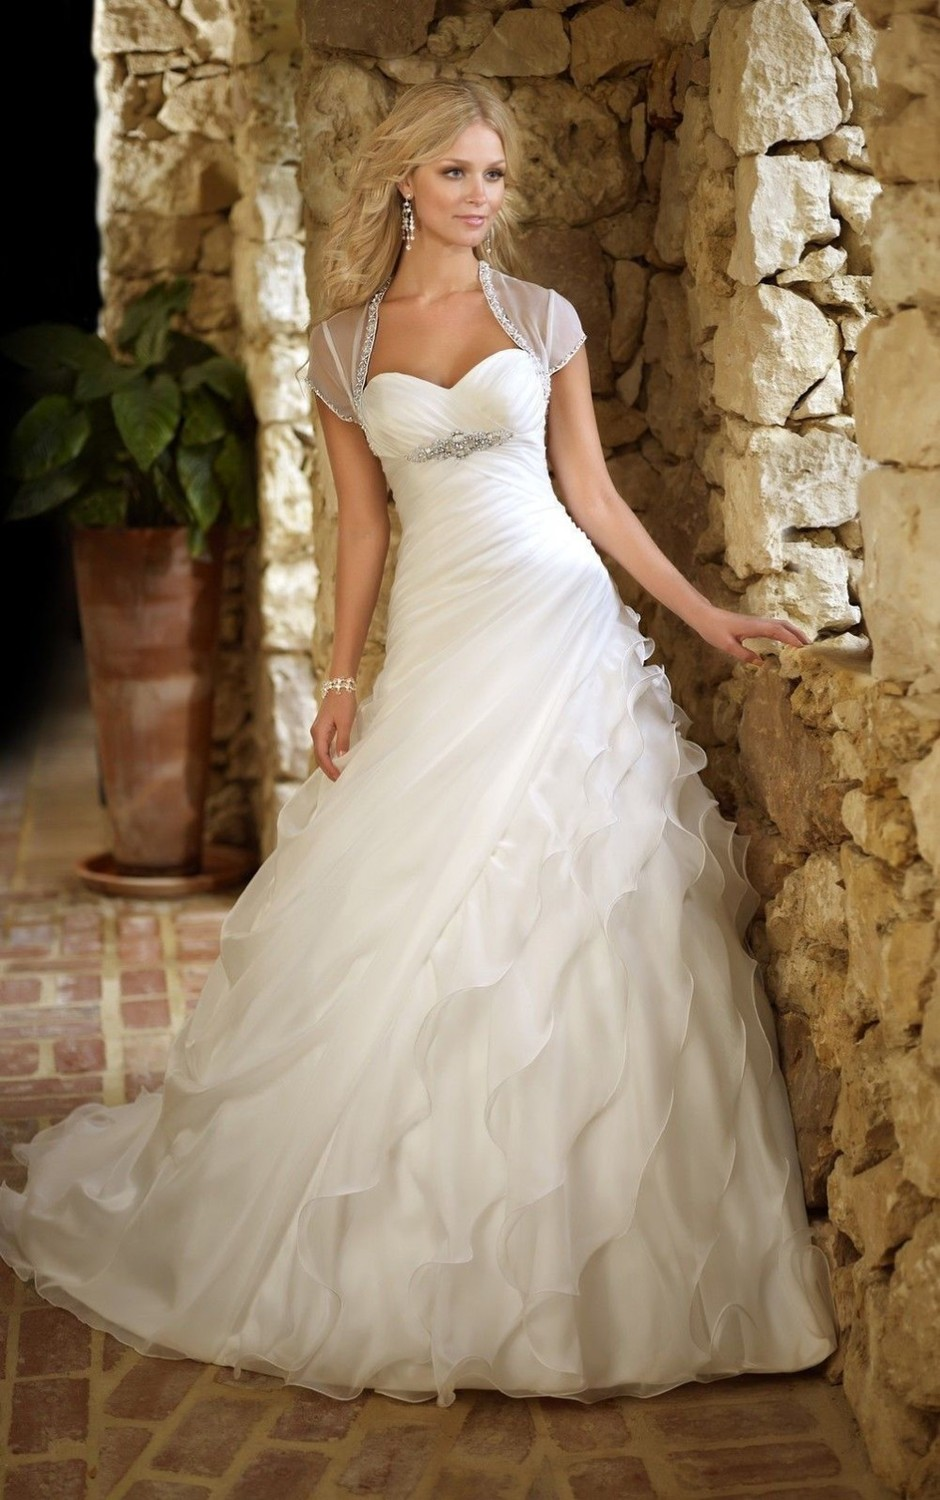 2018 Romantic Sweetheart White Layered Organza Bridal Gown Free Shipping Custom Vestido De Noiva Mother Of The Bride Dresses